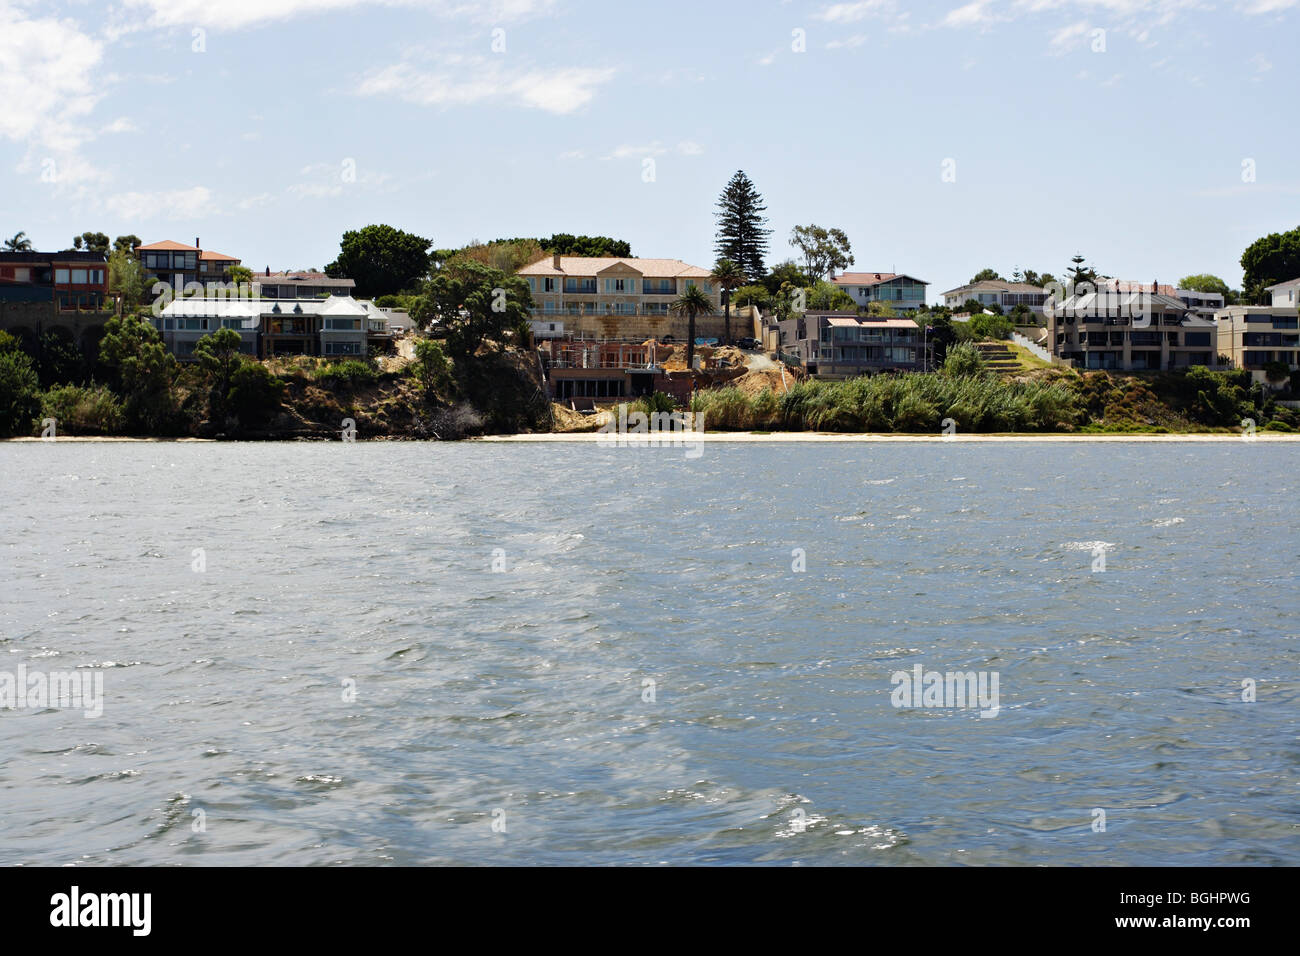 Exceptional Luxury Homes On The Bank Of Swan River Between Perth And Fremantle In  Western Australia.